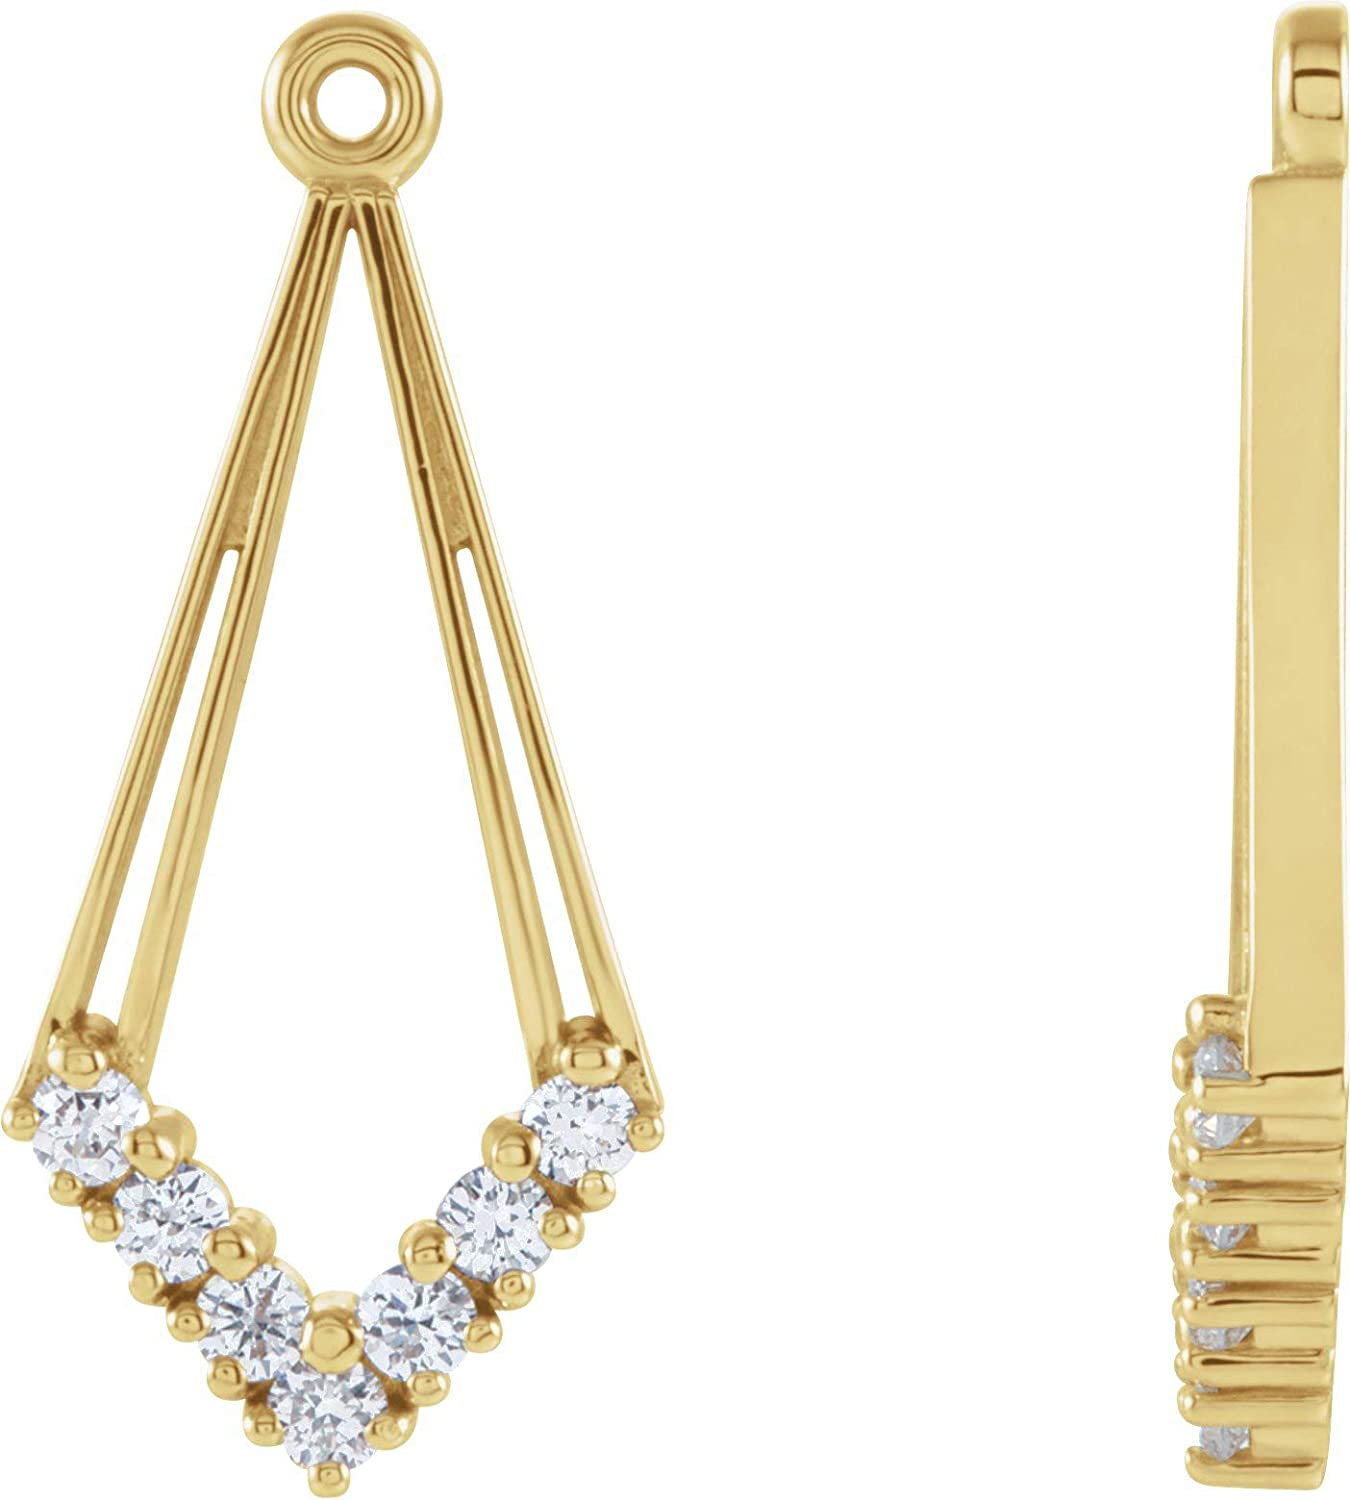 PicturesOnGold Solid 14K Yellow Gold 1/4 CTW Diamond Earring Jackets